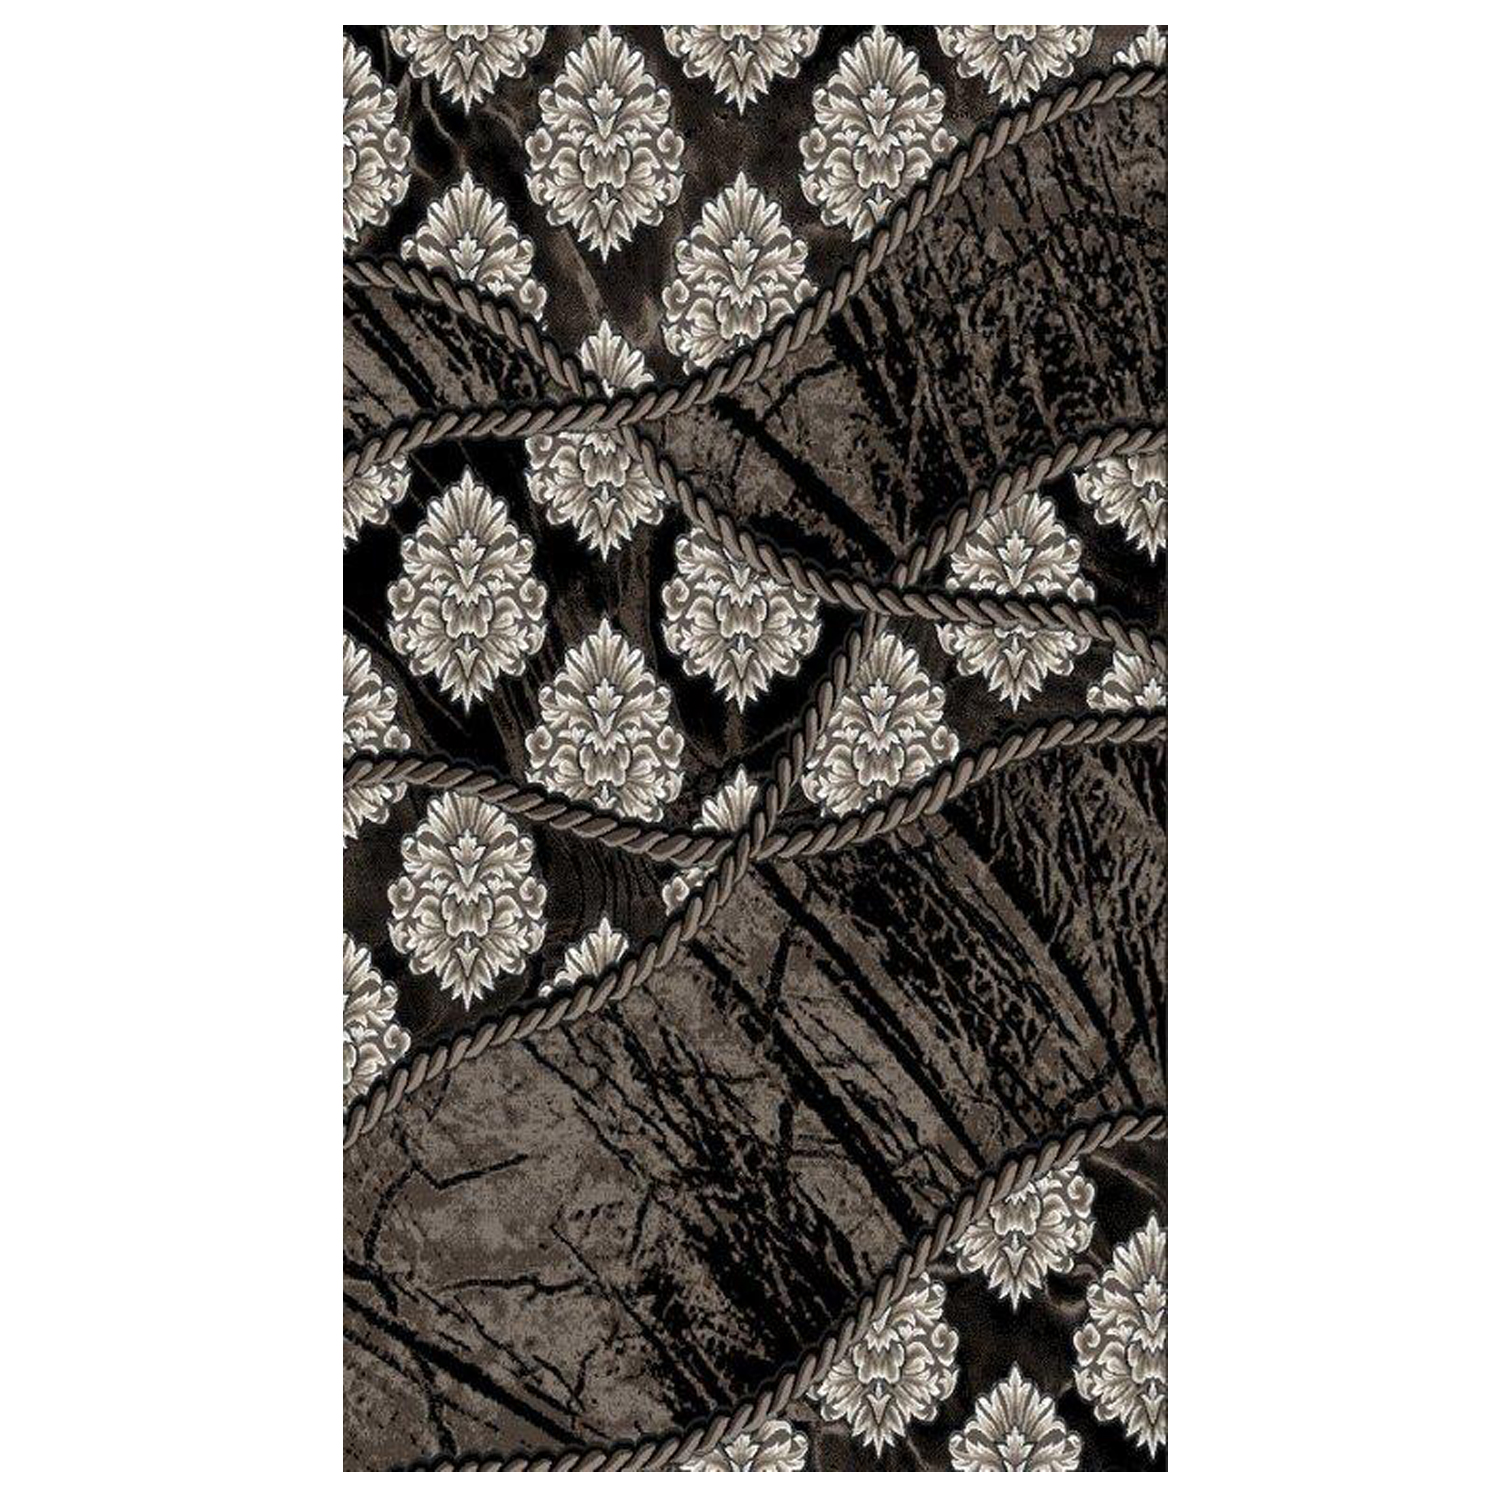 Jewel 8' x 10' Area Rug, BROWN BLACK